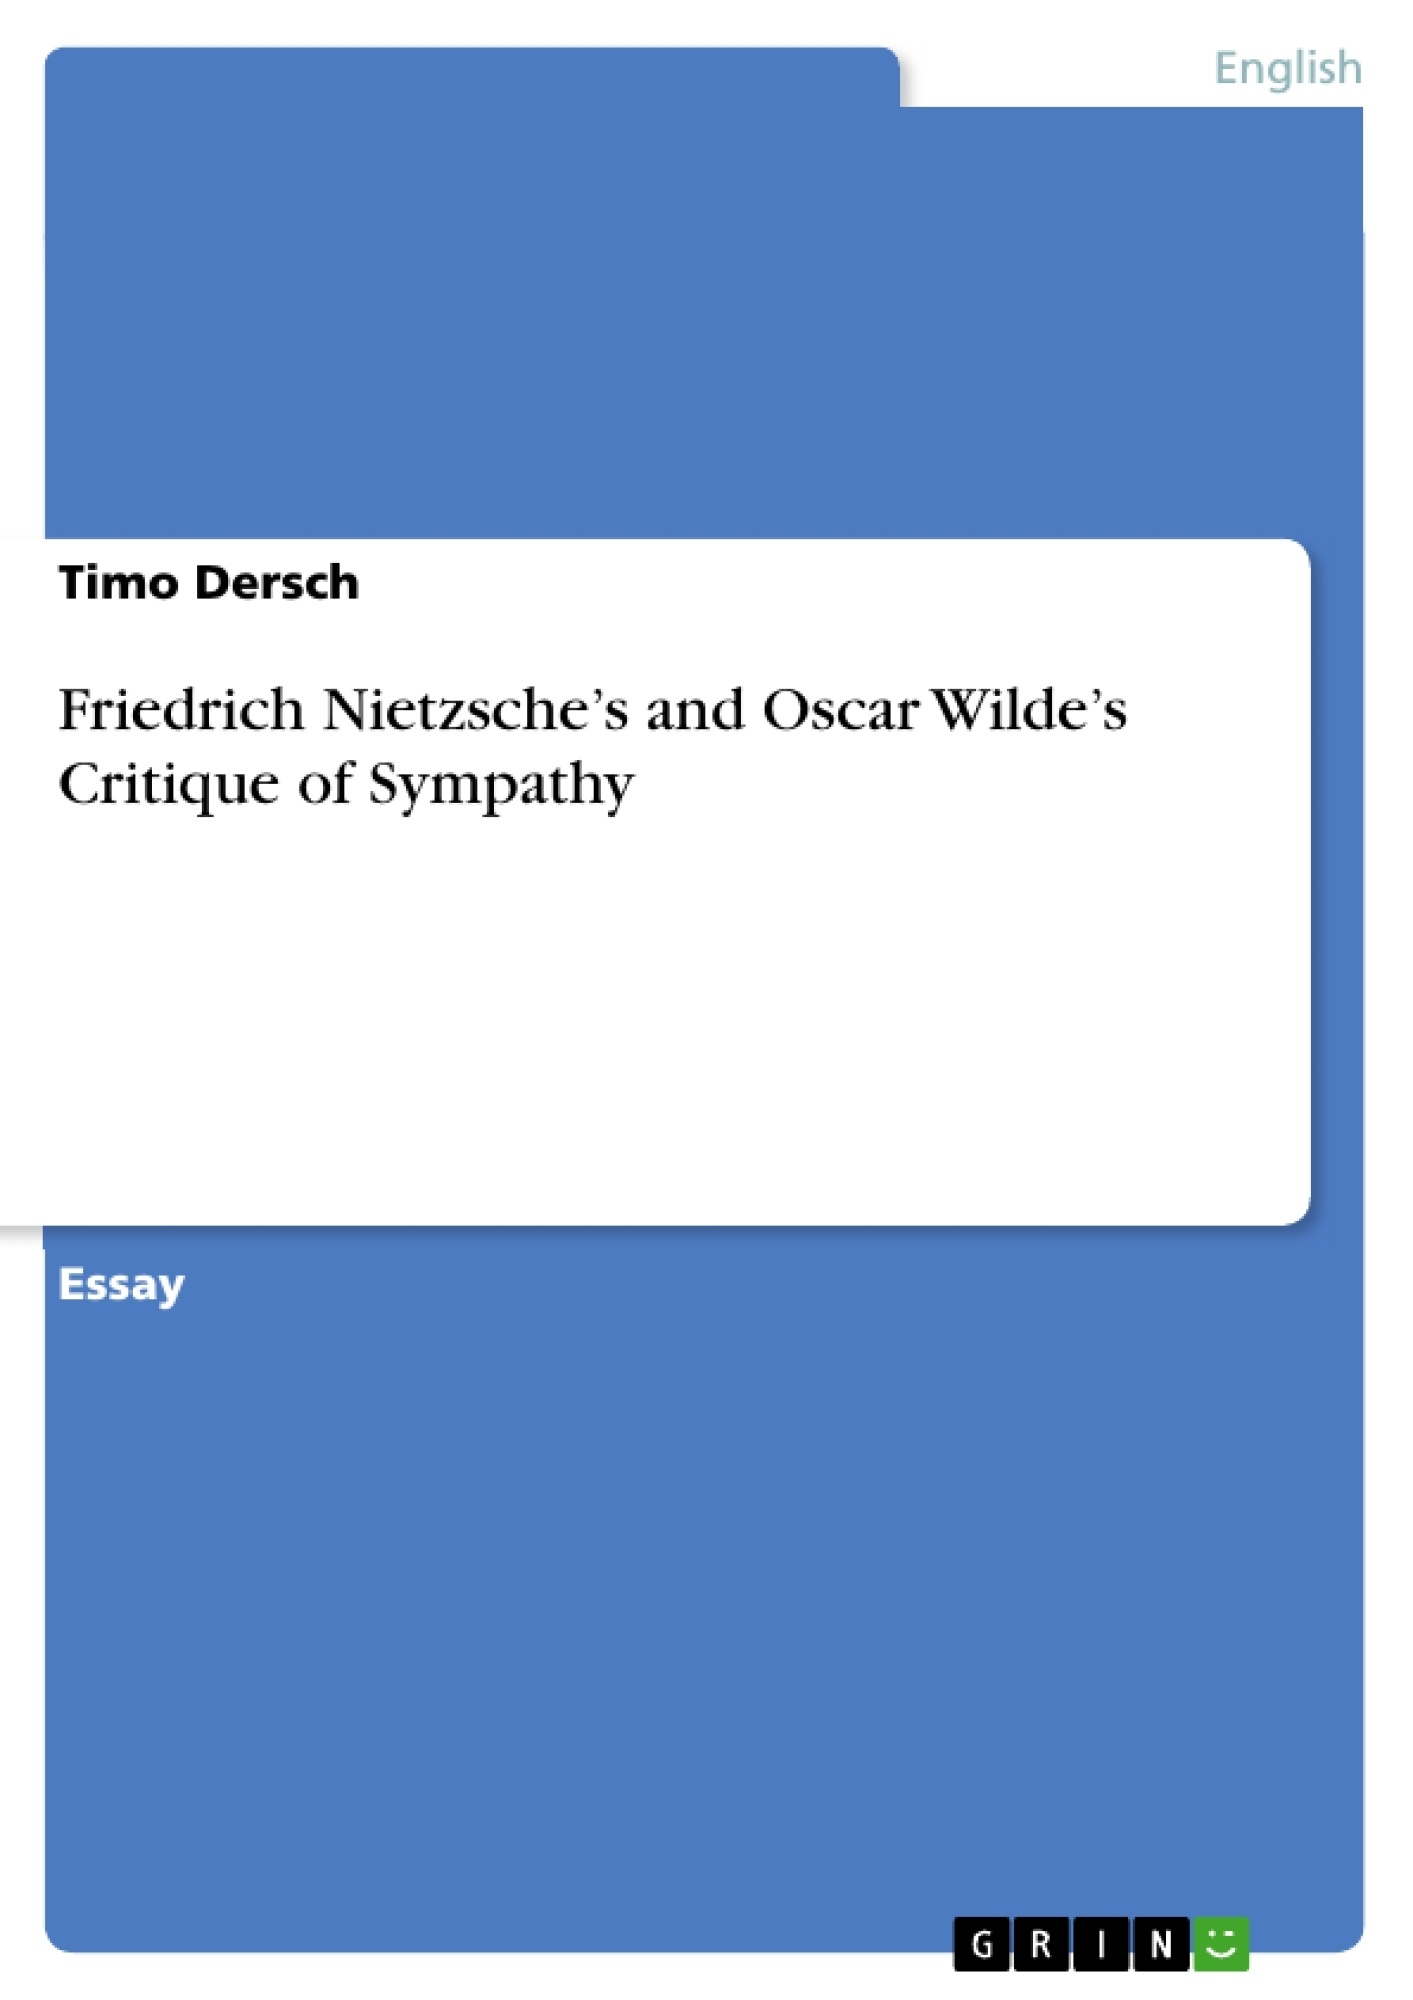 friedrich nietzsche s and oscar wilde s critique of sympathy upload your own papers earn money and win an iphone 7